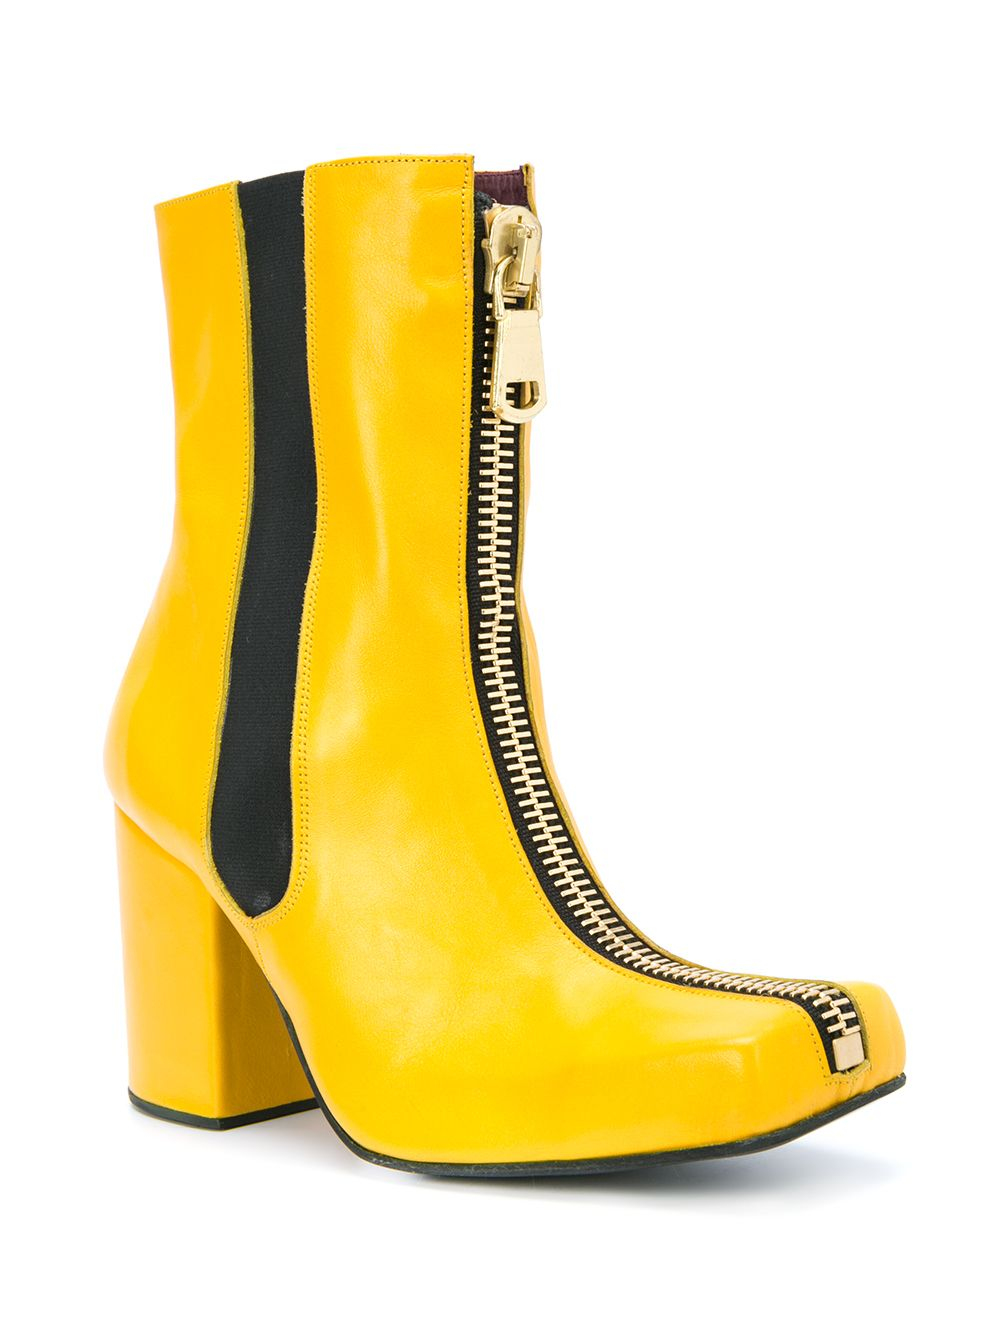 Charles Jeffrey Loverboy x Roker Atelier Yellow Zipped Jasc Boots - 2